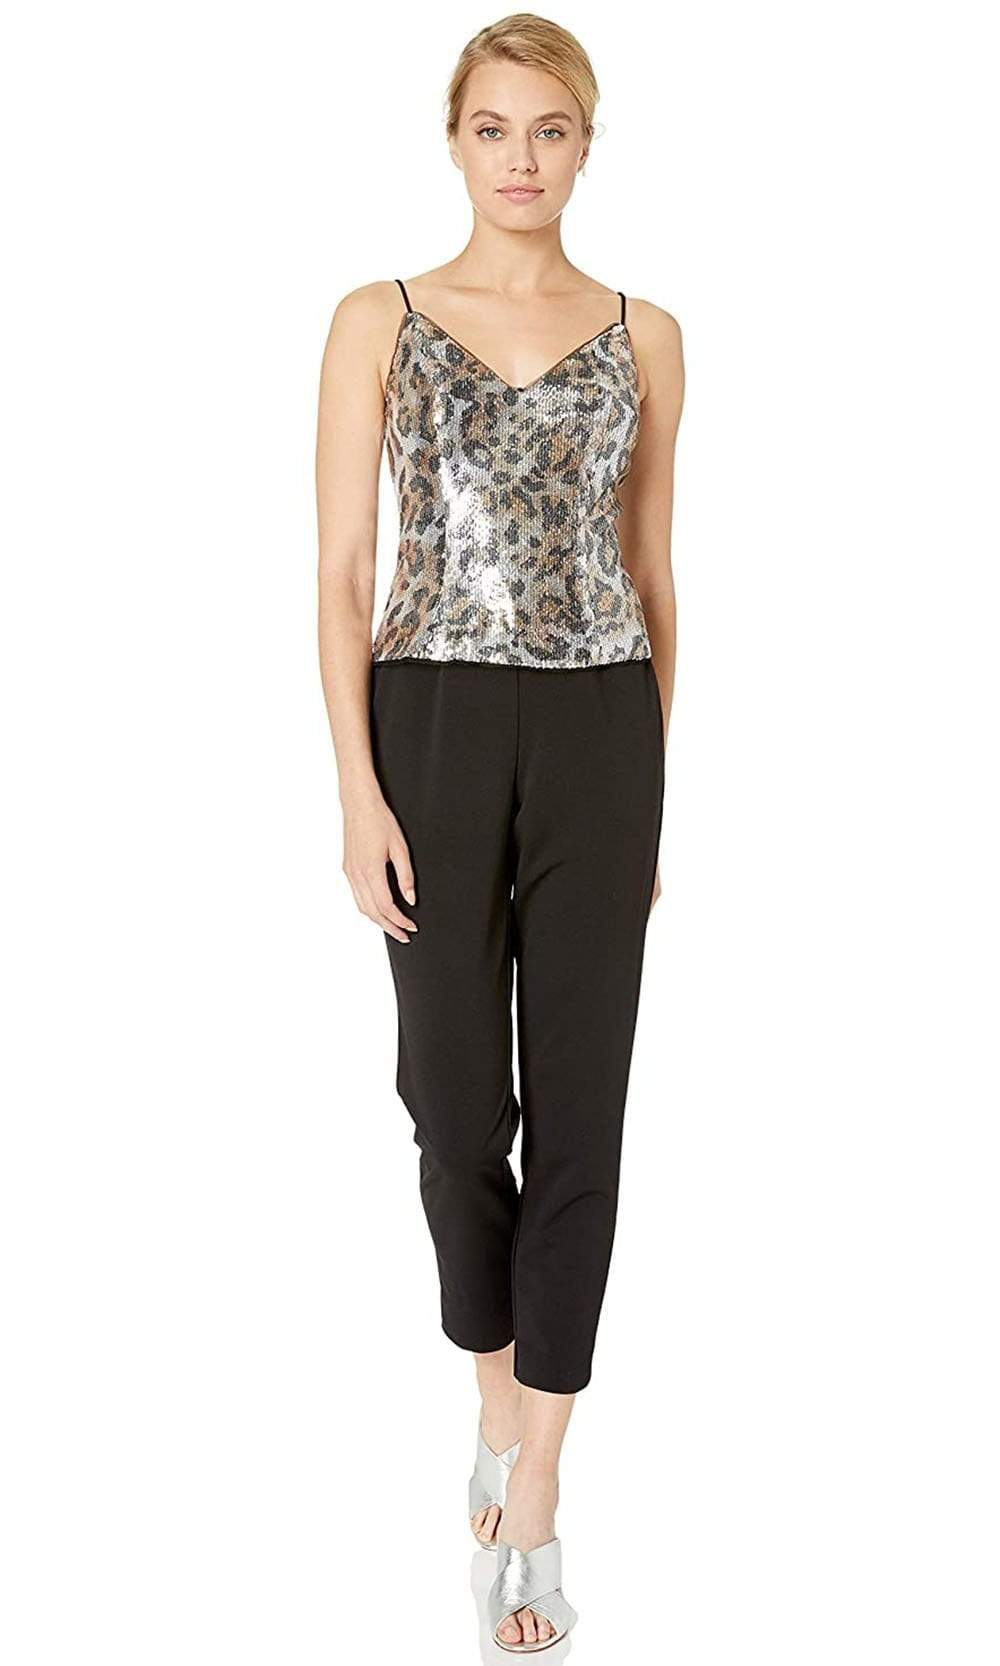 Adrianna Papell - AP1E206282 Sequined Animal Print Top Jumpsuit from Adrianna Papell